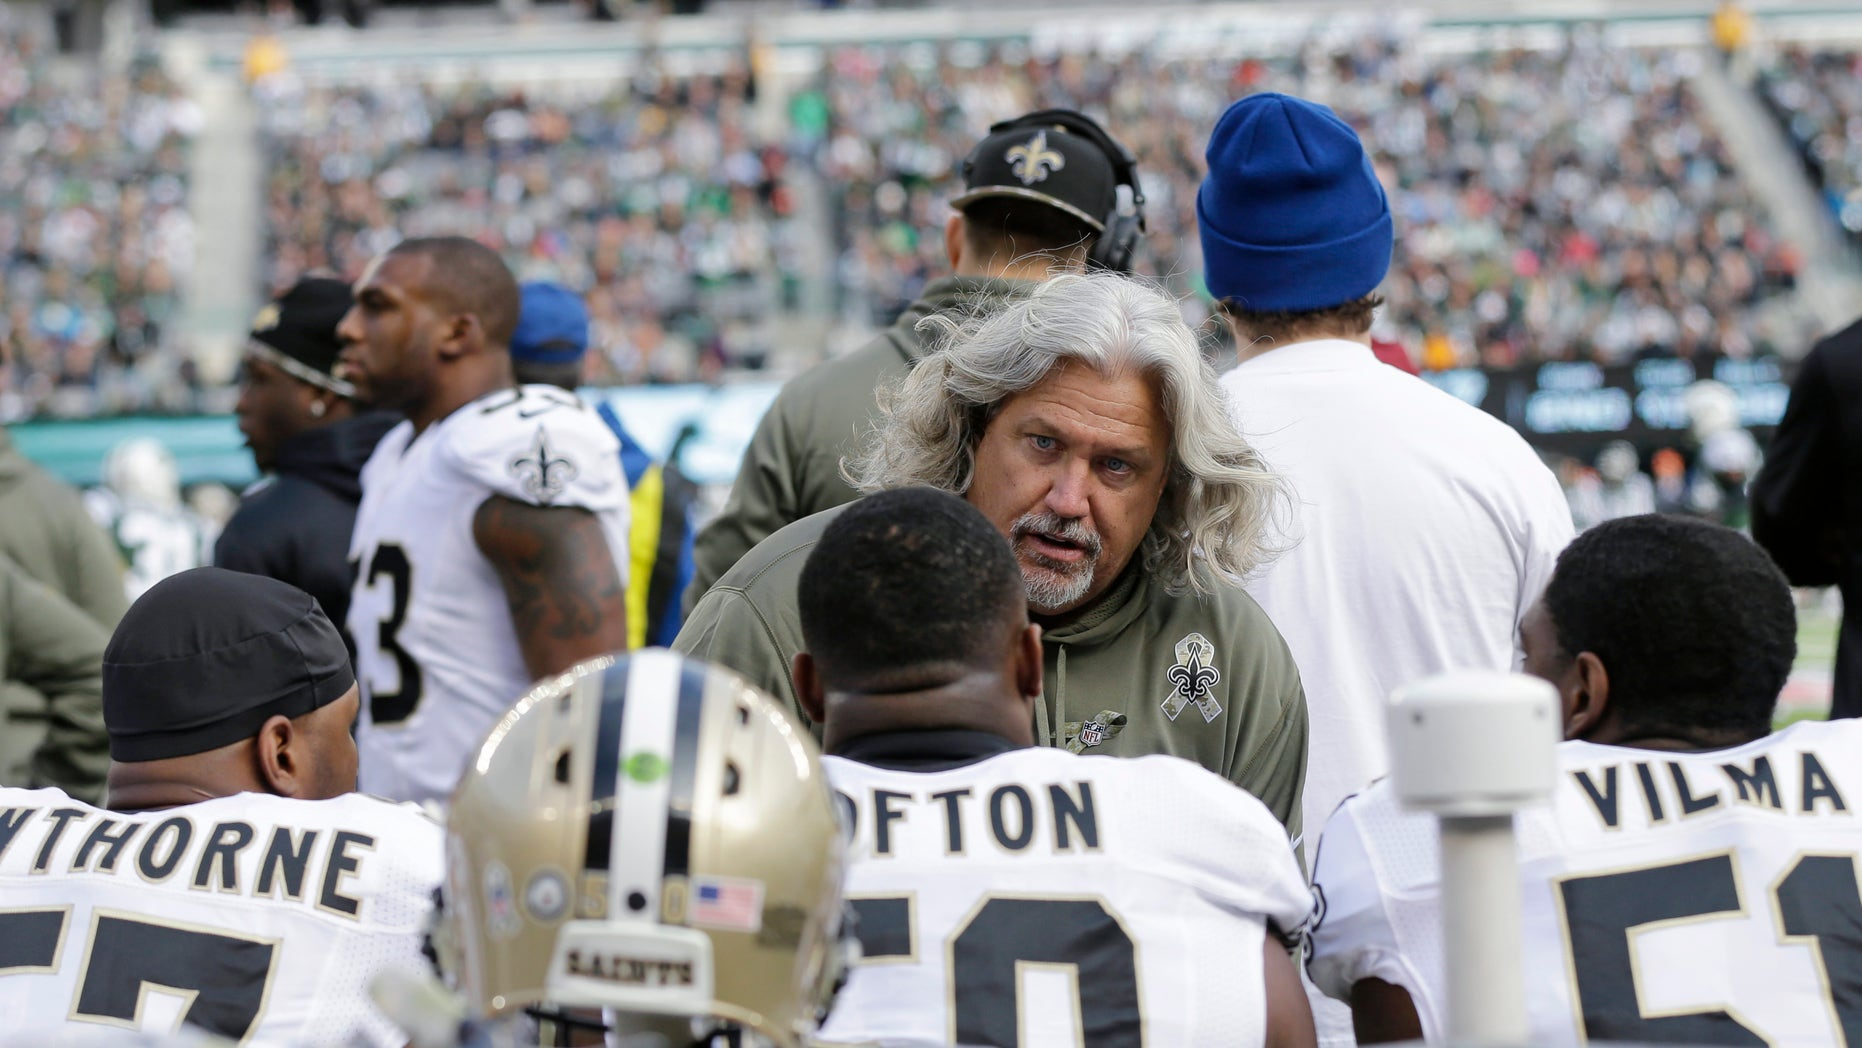 In this Nov. 3, 2013, photo, New Orleans Saints defensive coordinator Rob Ryan talks to his team during the first half of an NFL football game against the New York Jets in East Rutherford, N.J.  In his first season with New Orleans, Ryan has perhaps done his best work yet, keeping a unit beset by key injuries performing well into the divisional round of the playoffs. Now, however, the Saints' defense returns to Seattle, site of its worst performance this season. (AP Photo/Mel Evans)